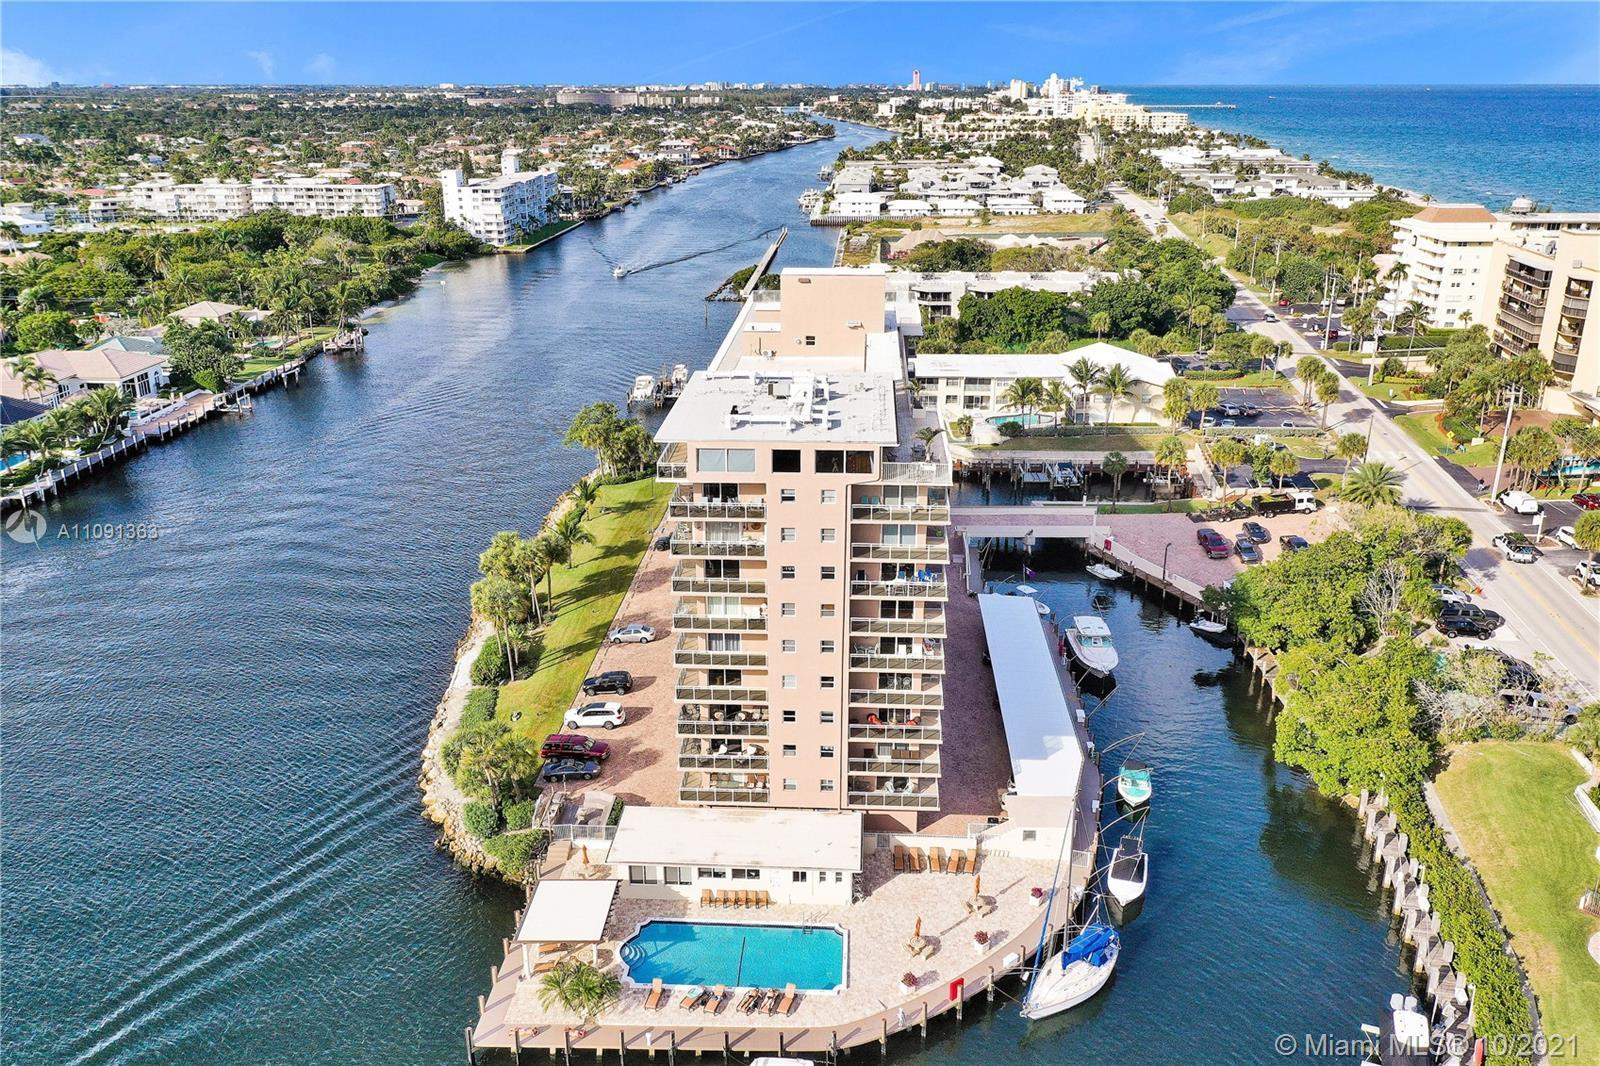 Renovated from top to bottom this 2/2 condo located on Hillsboro Mile is surround by water. Entertai